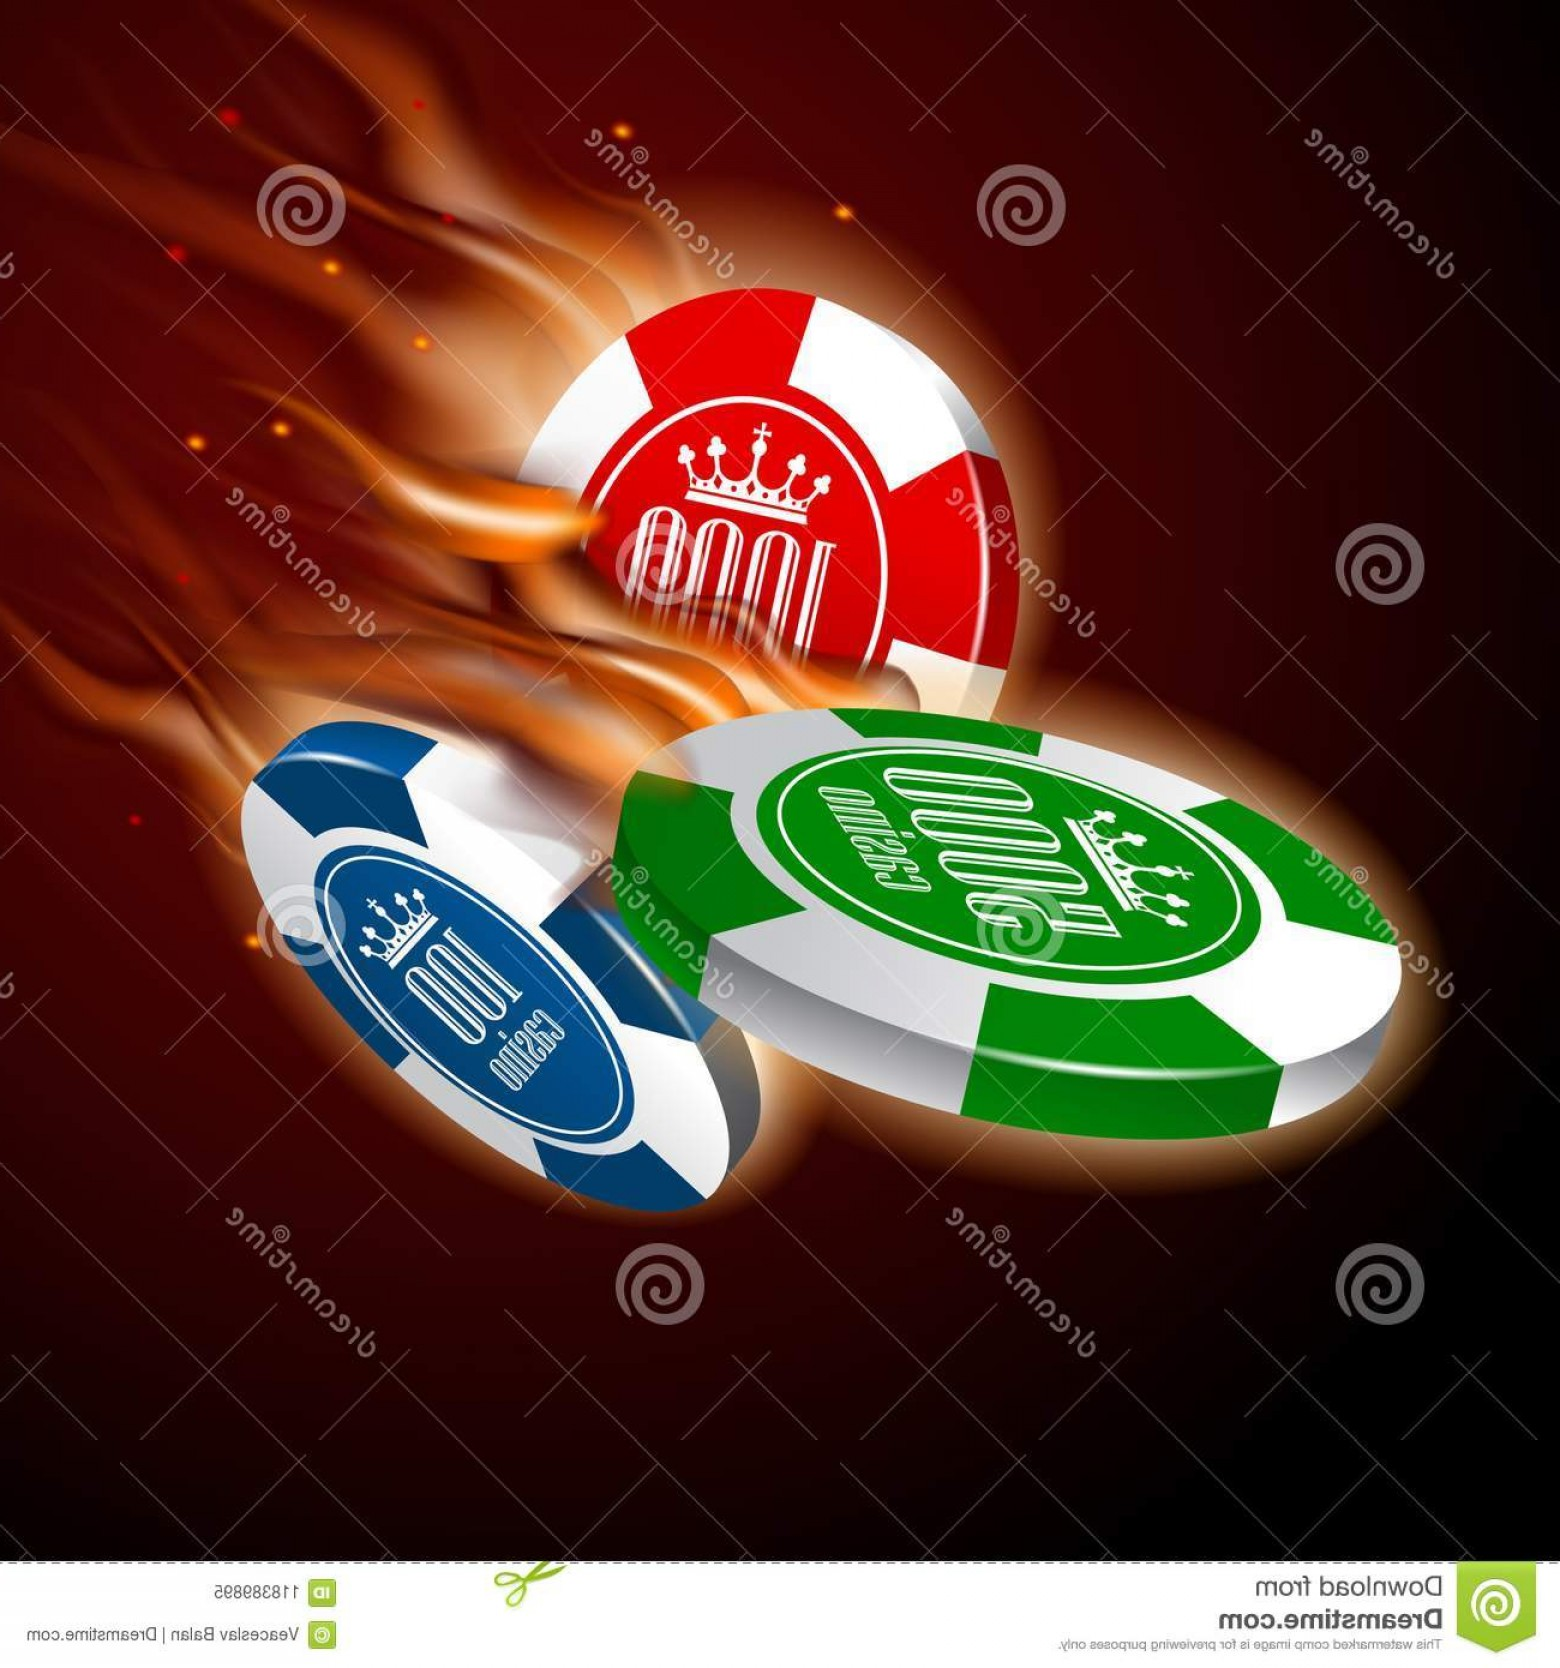 Editable Vector Poker Chips: Hires Vector Eps File Layered Editable Casino Chips Set Flight Flame Dark Background Image